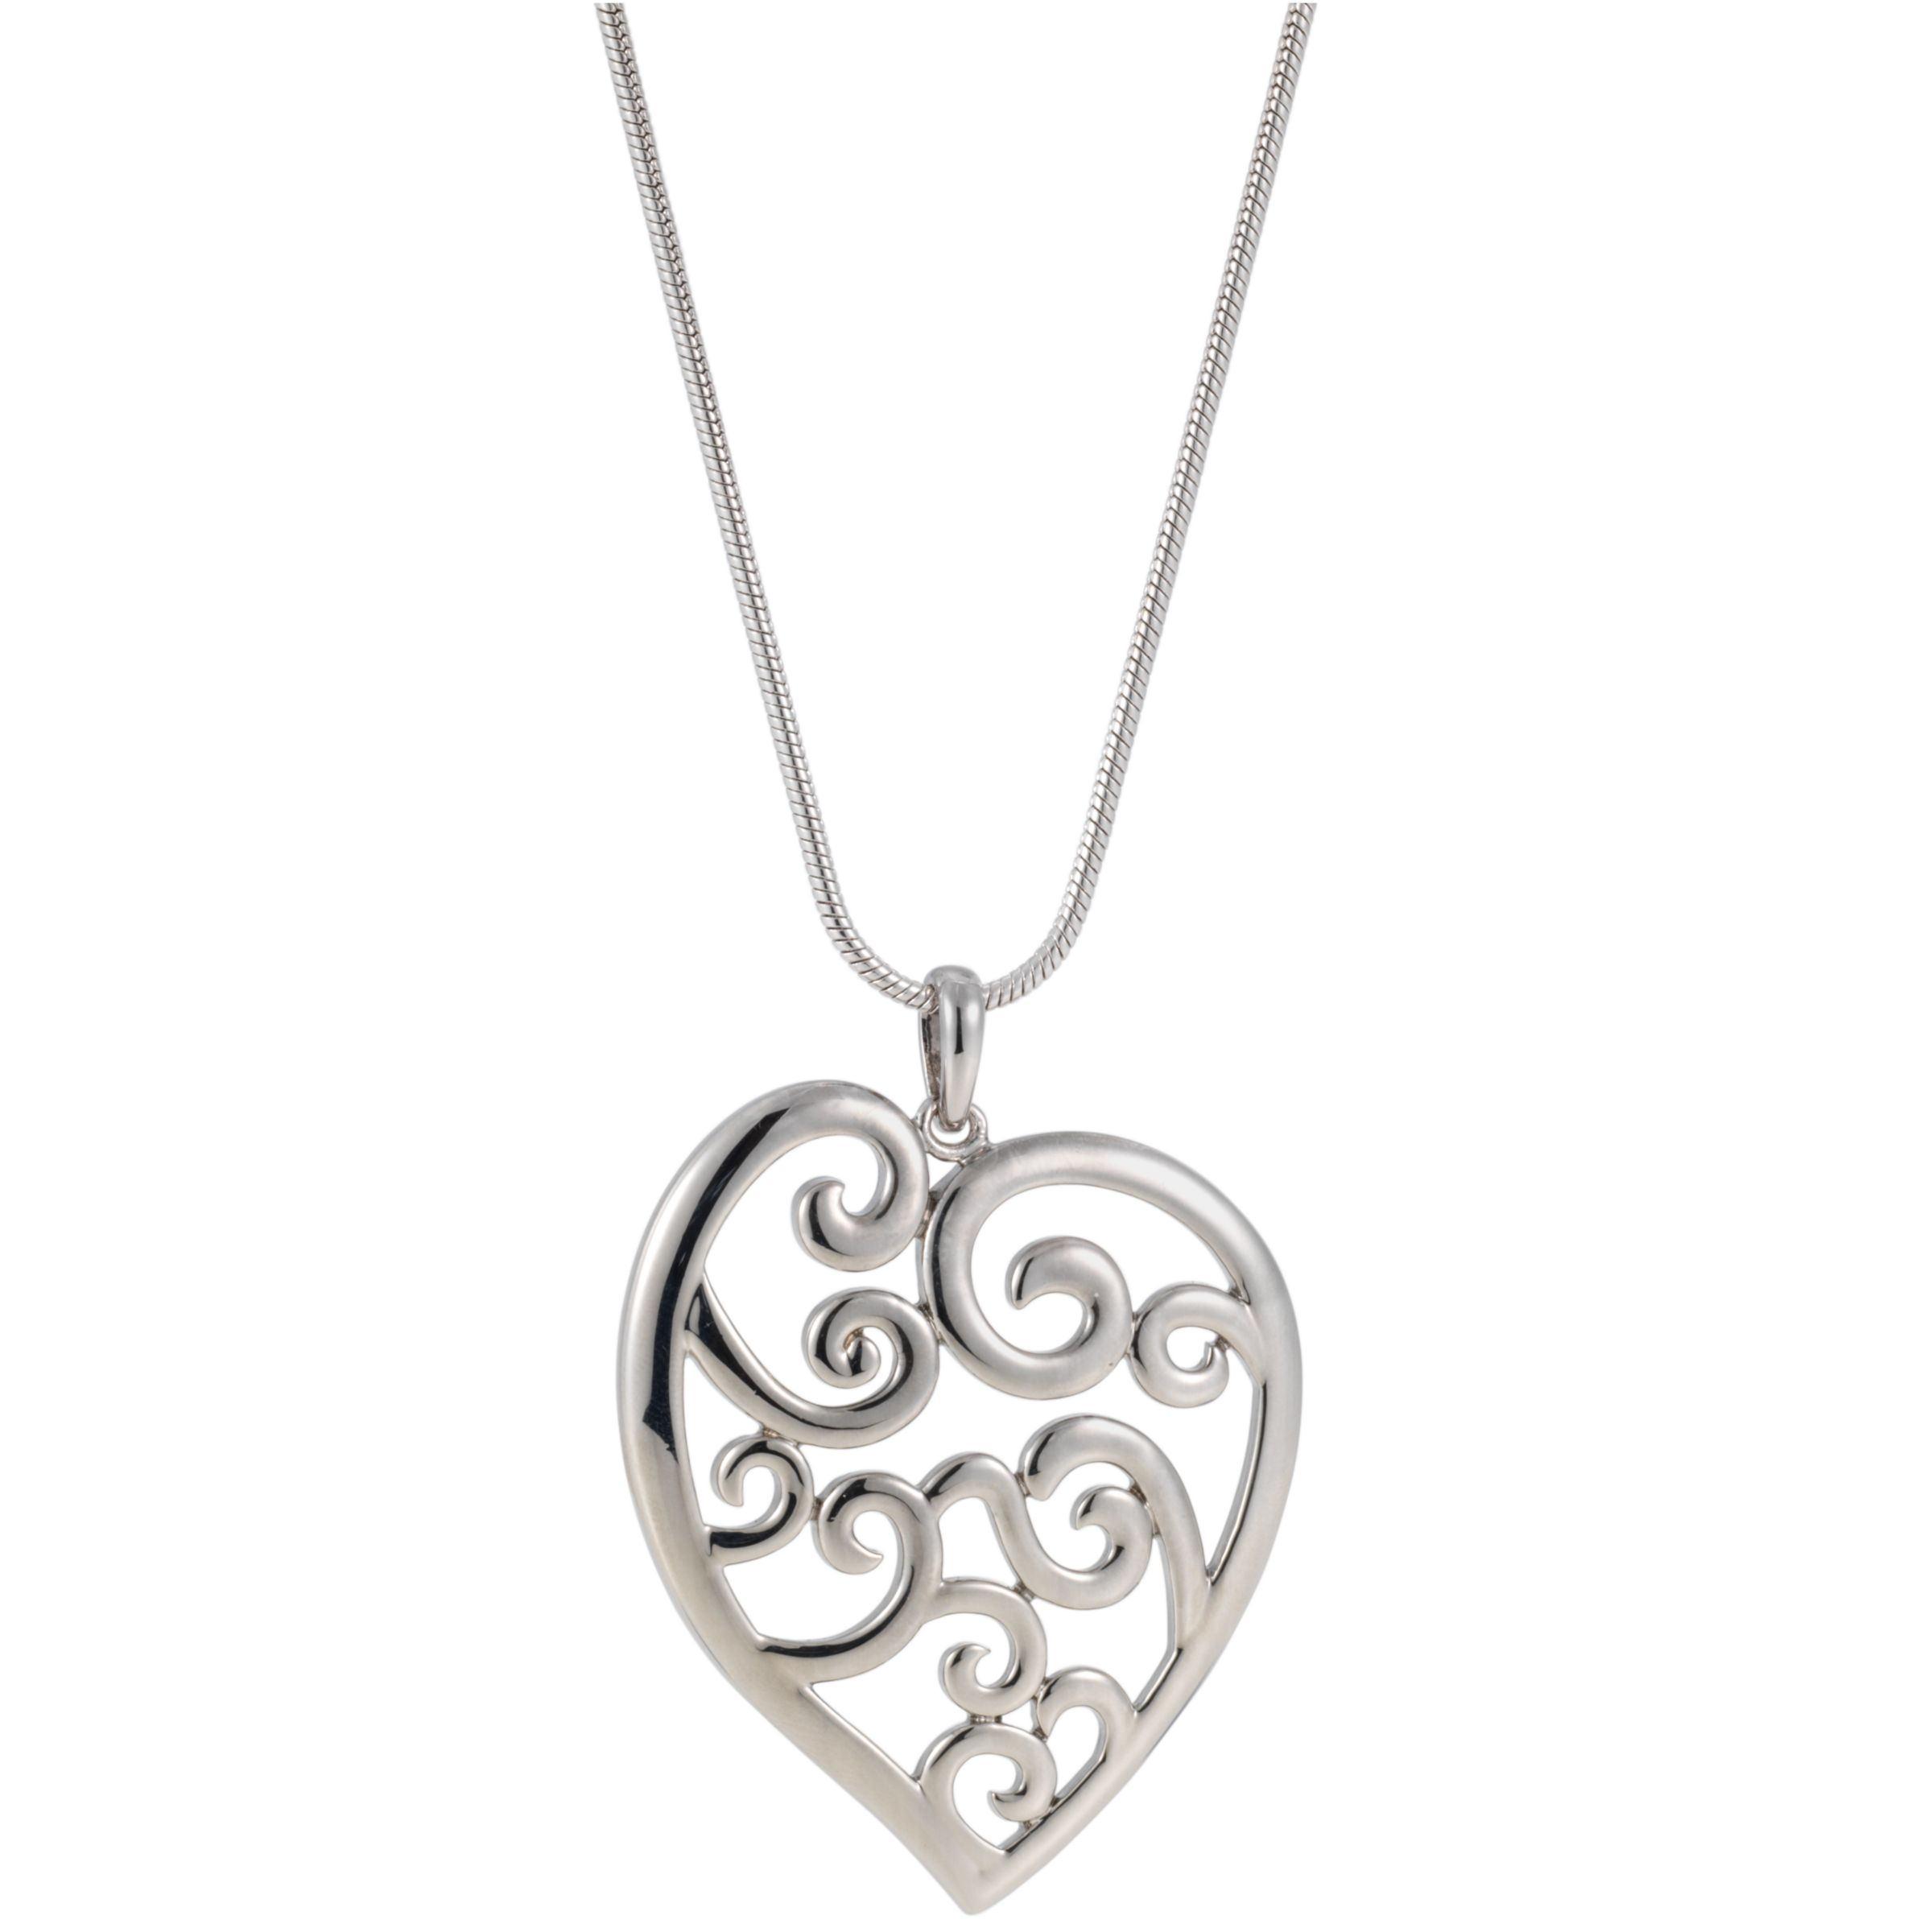 Finesse Scrolled Heart Pendant Necklace